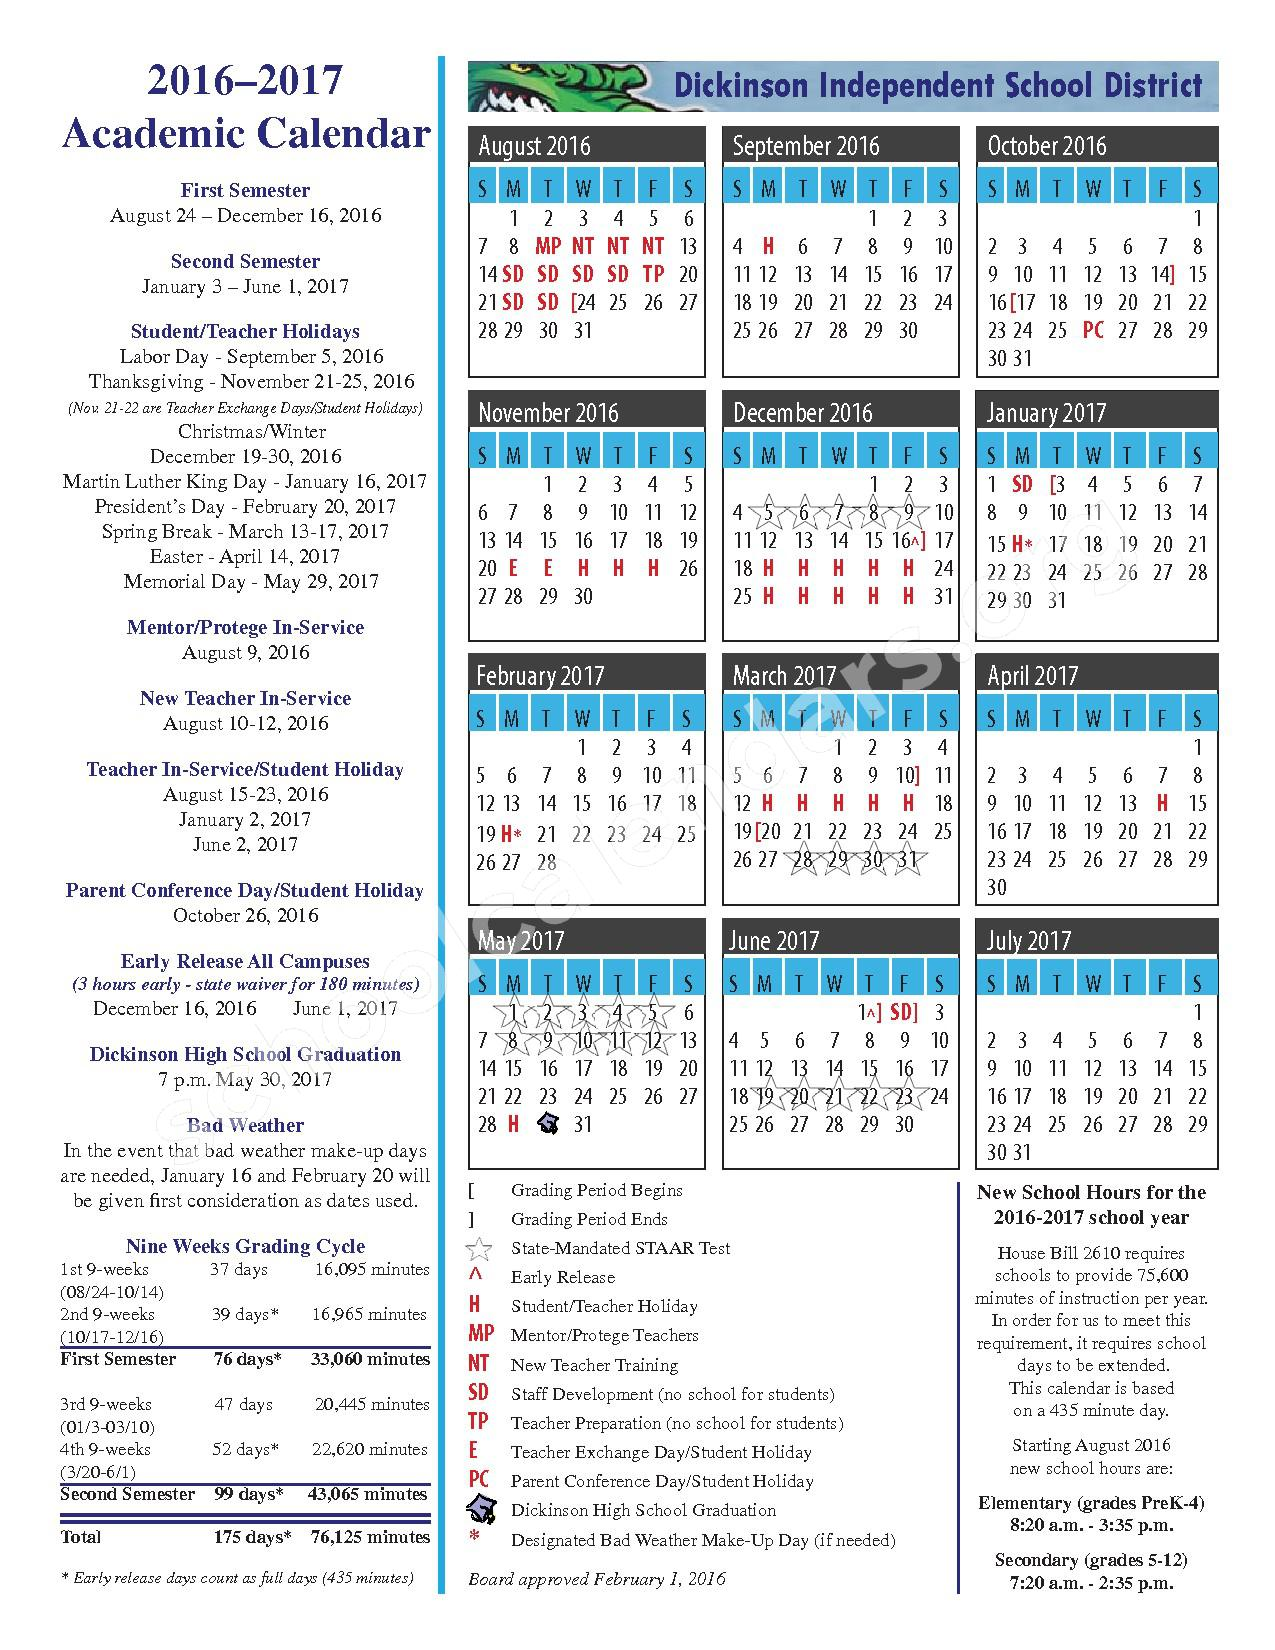 2016 - 2017 District Calendar – Dickinson Independent School District – page 1